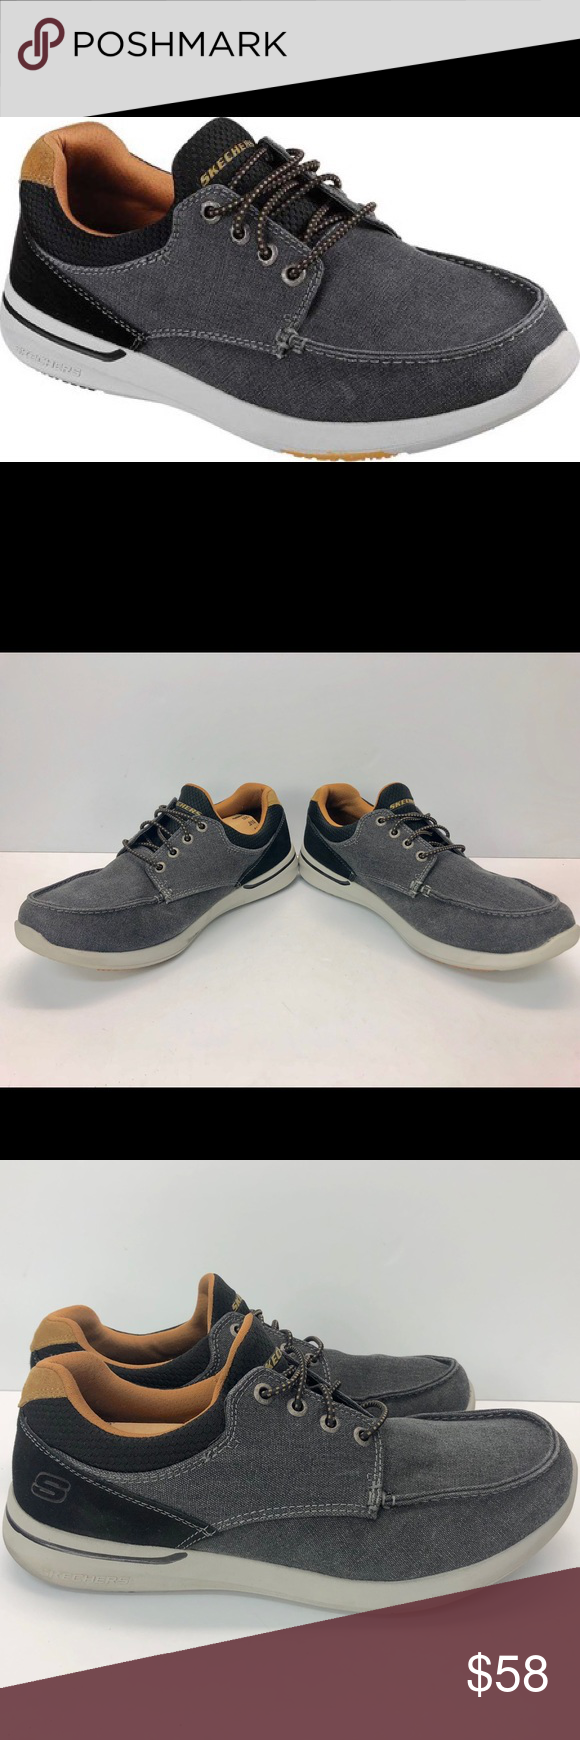 Relaxed Fit-Elent-mosen Boat | Skechers